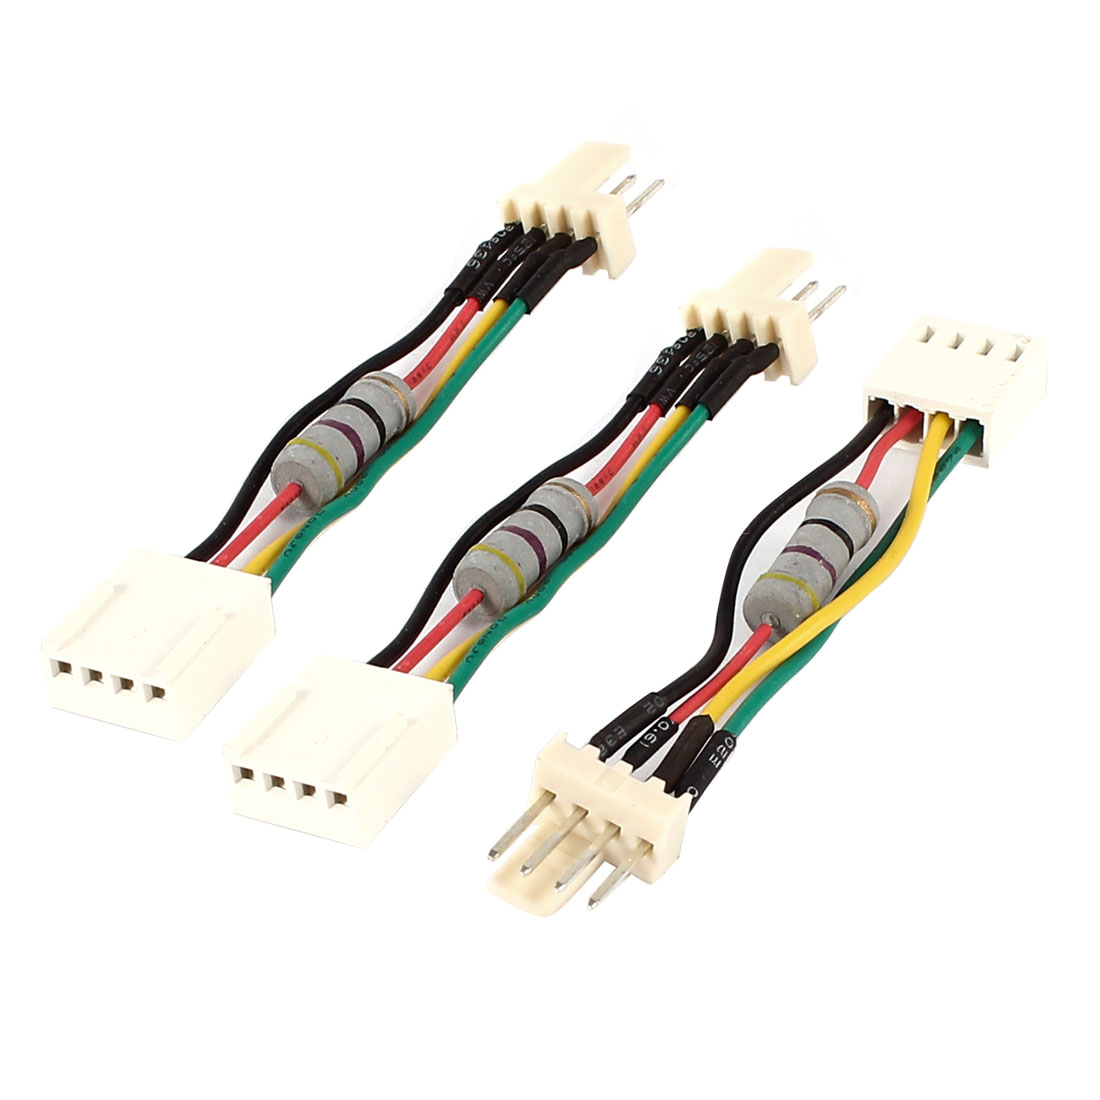 3 Pcs PC PWM Fan Speed Noise Reduce 4 Pins 4Wires Resistor Cable